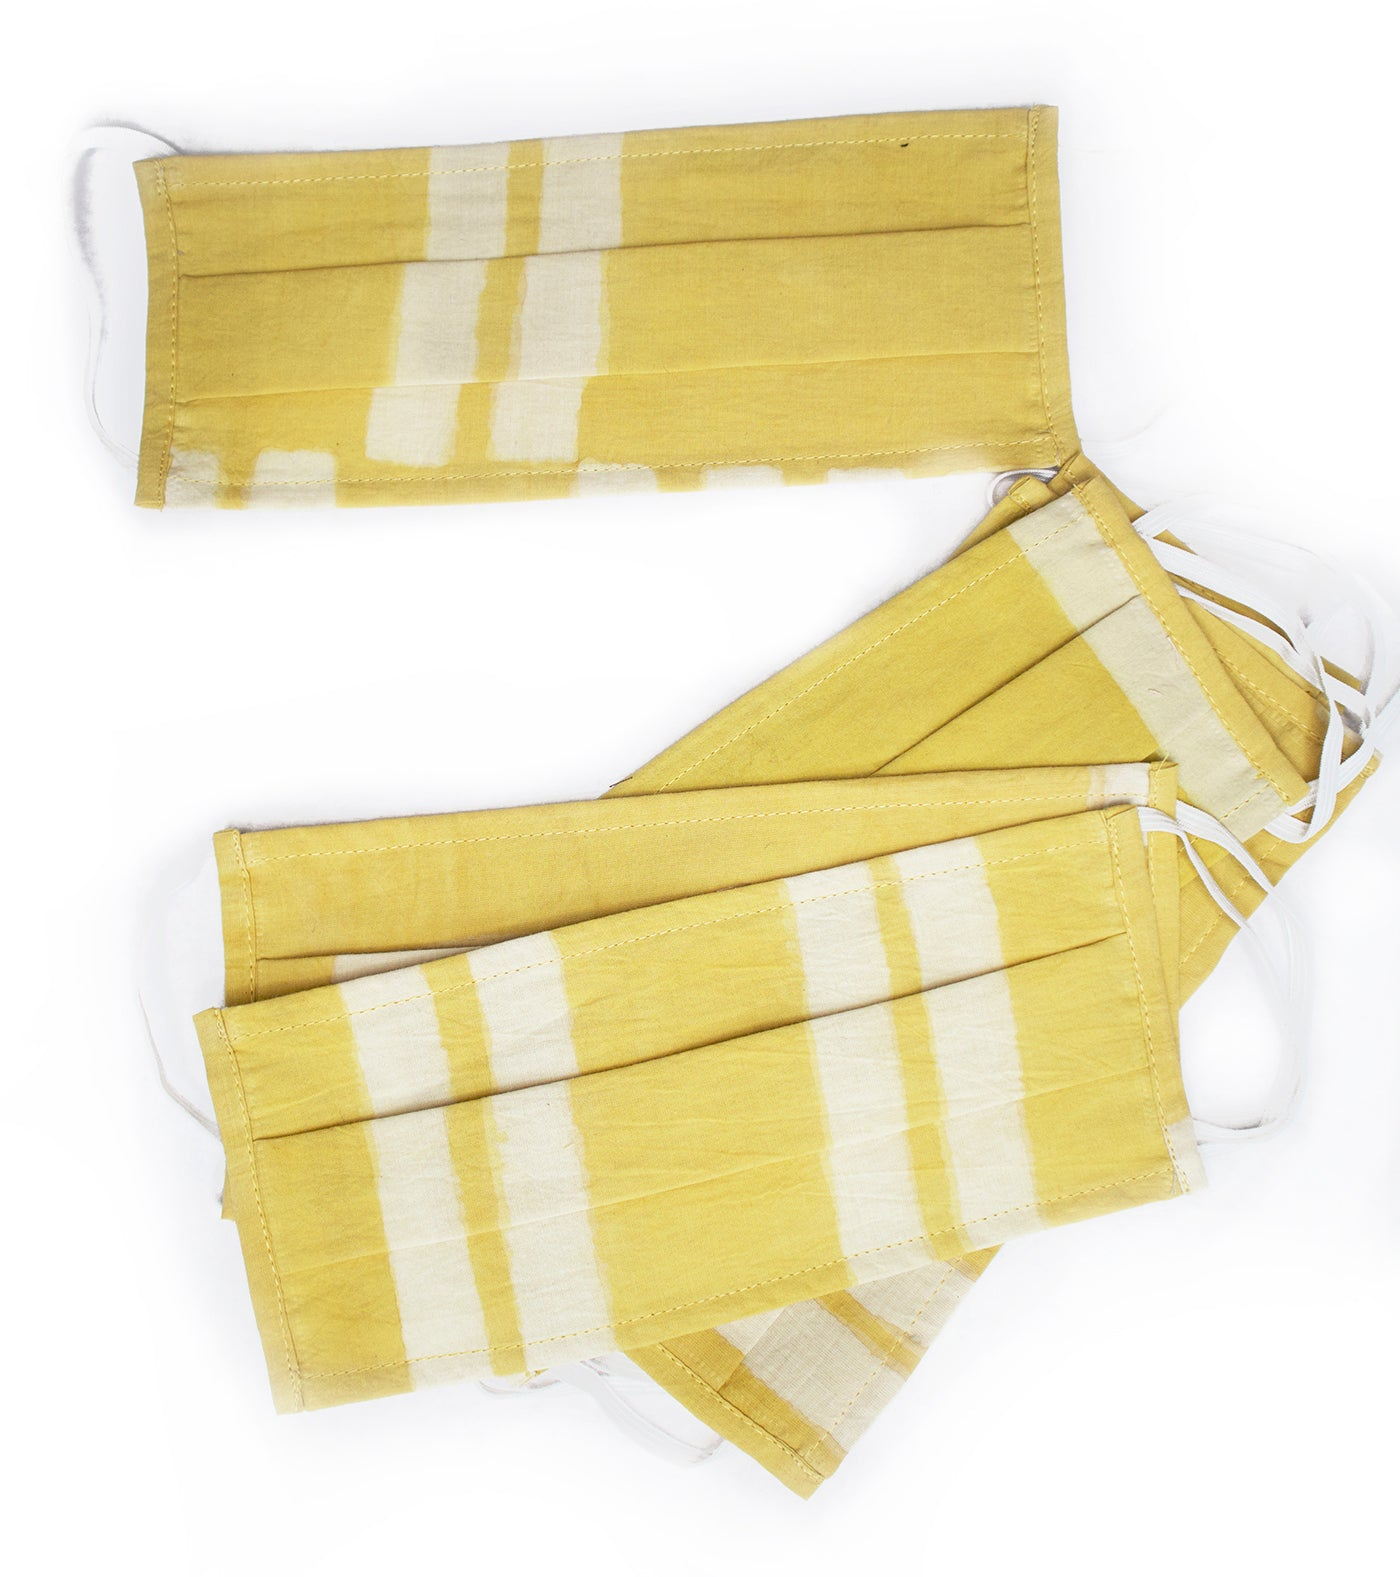 2 Pleat mask. Coded line print Yellow / White